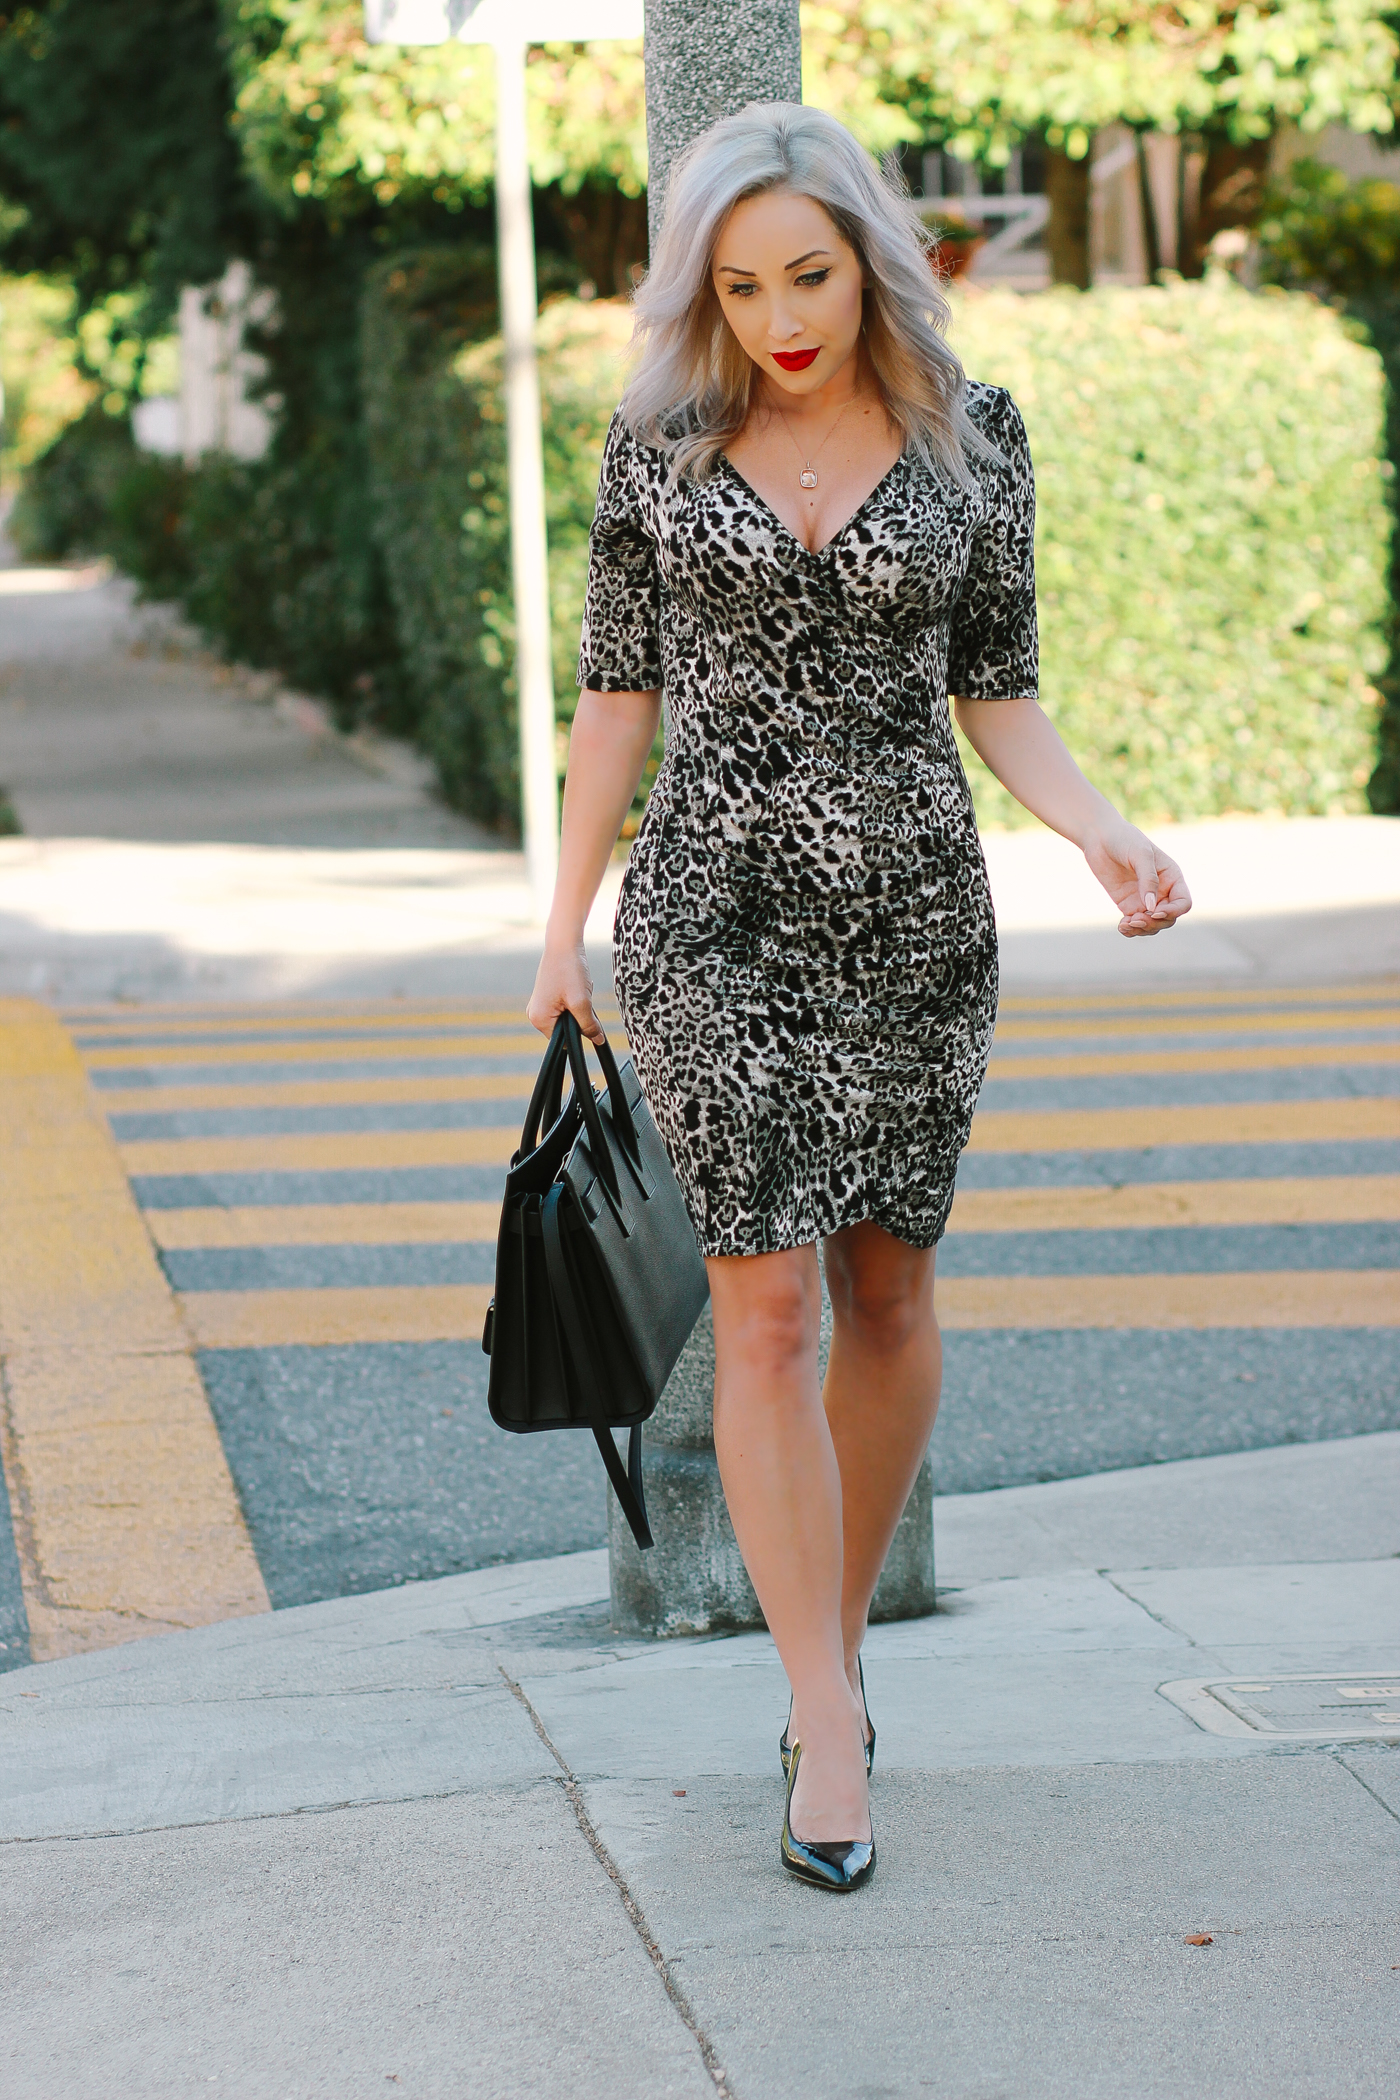 Blondie in the City | Classy Leopard Dress | Saint Laurent Sac De Jour Bag